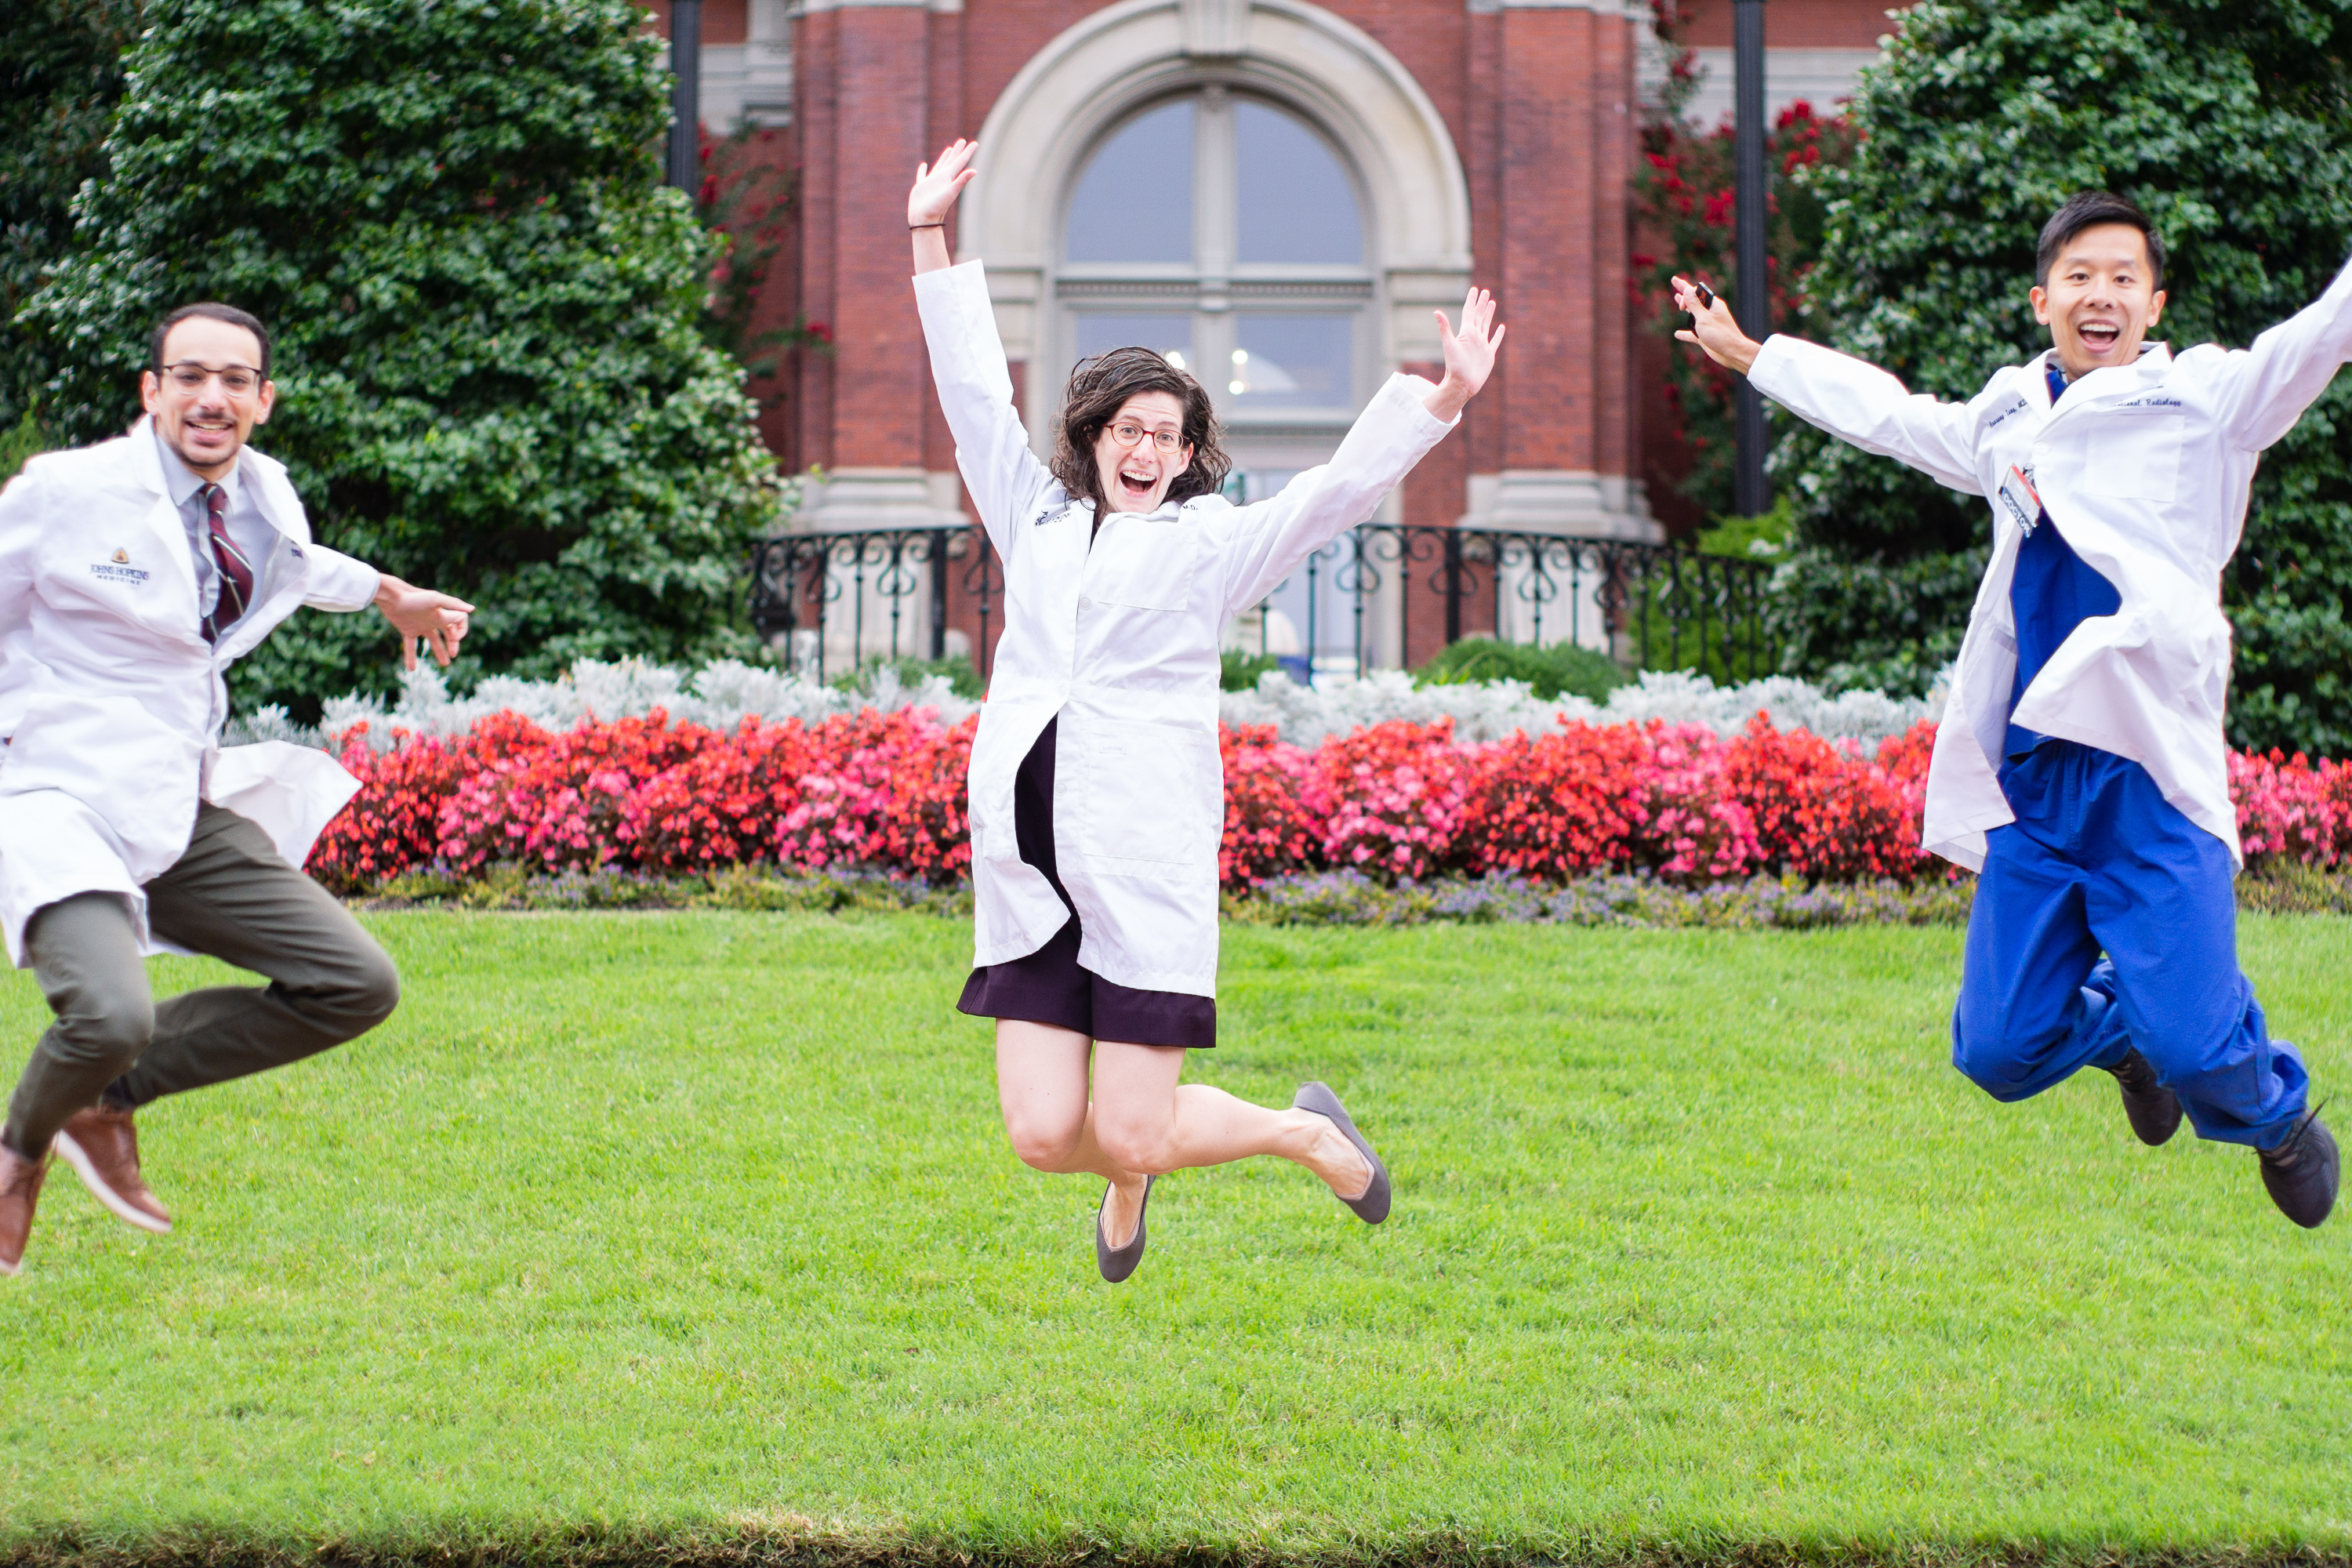 chief residents jumping in front of the dome building